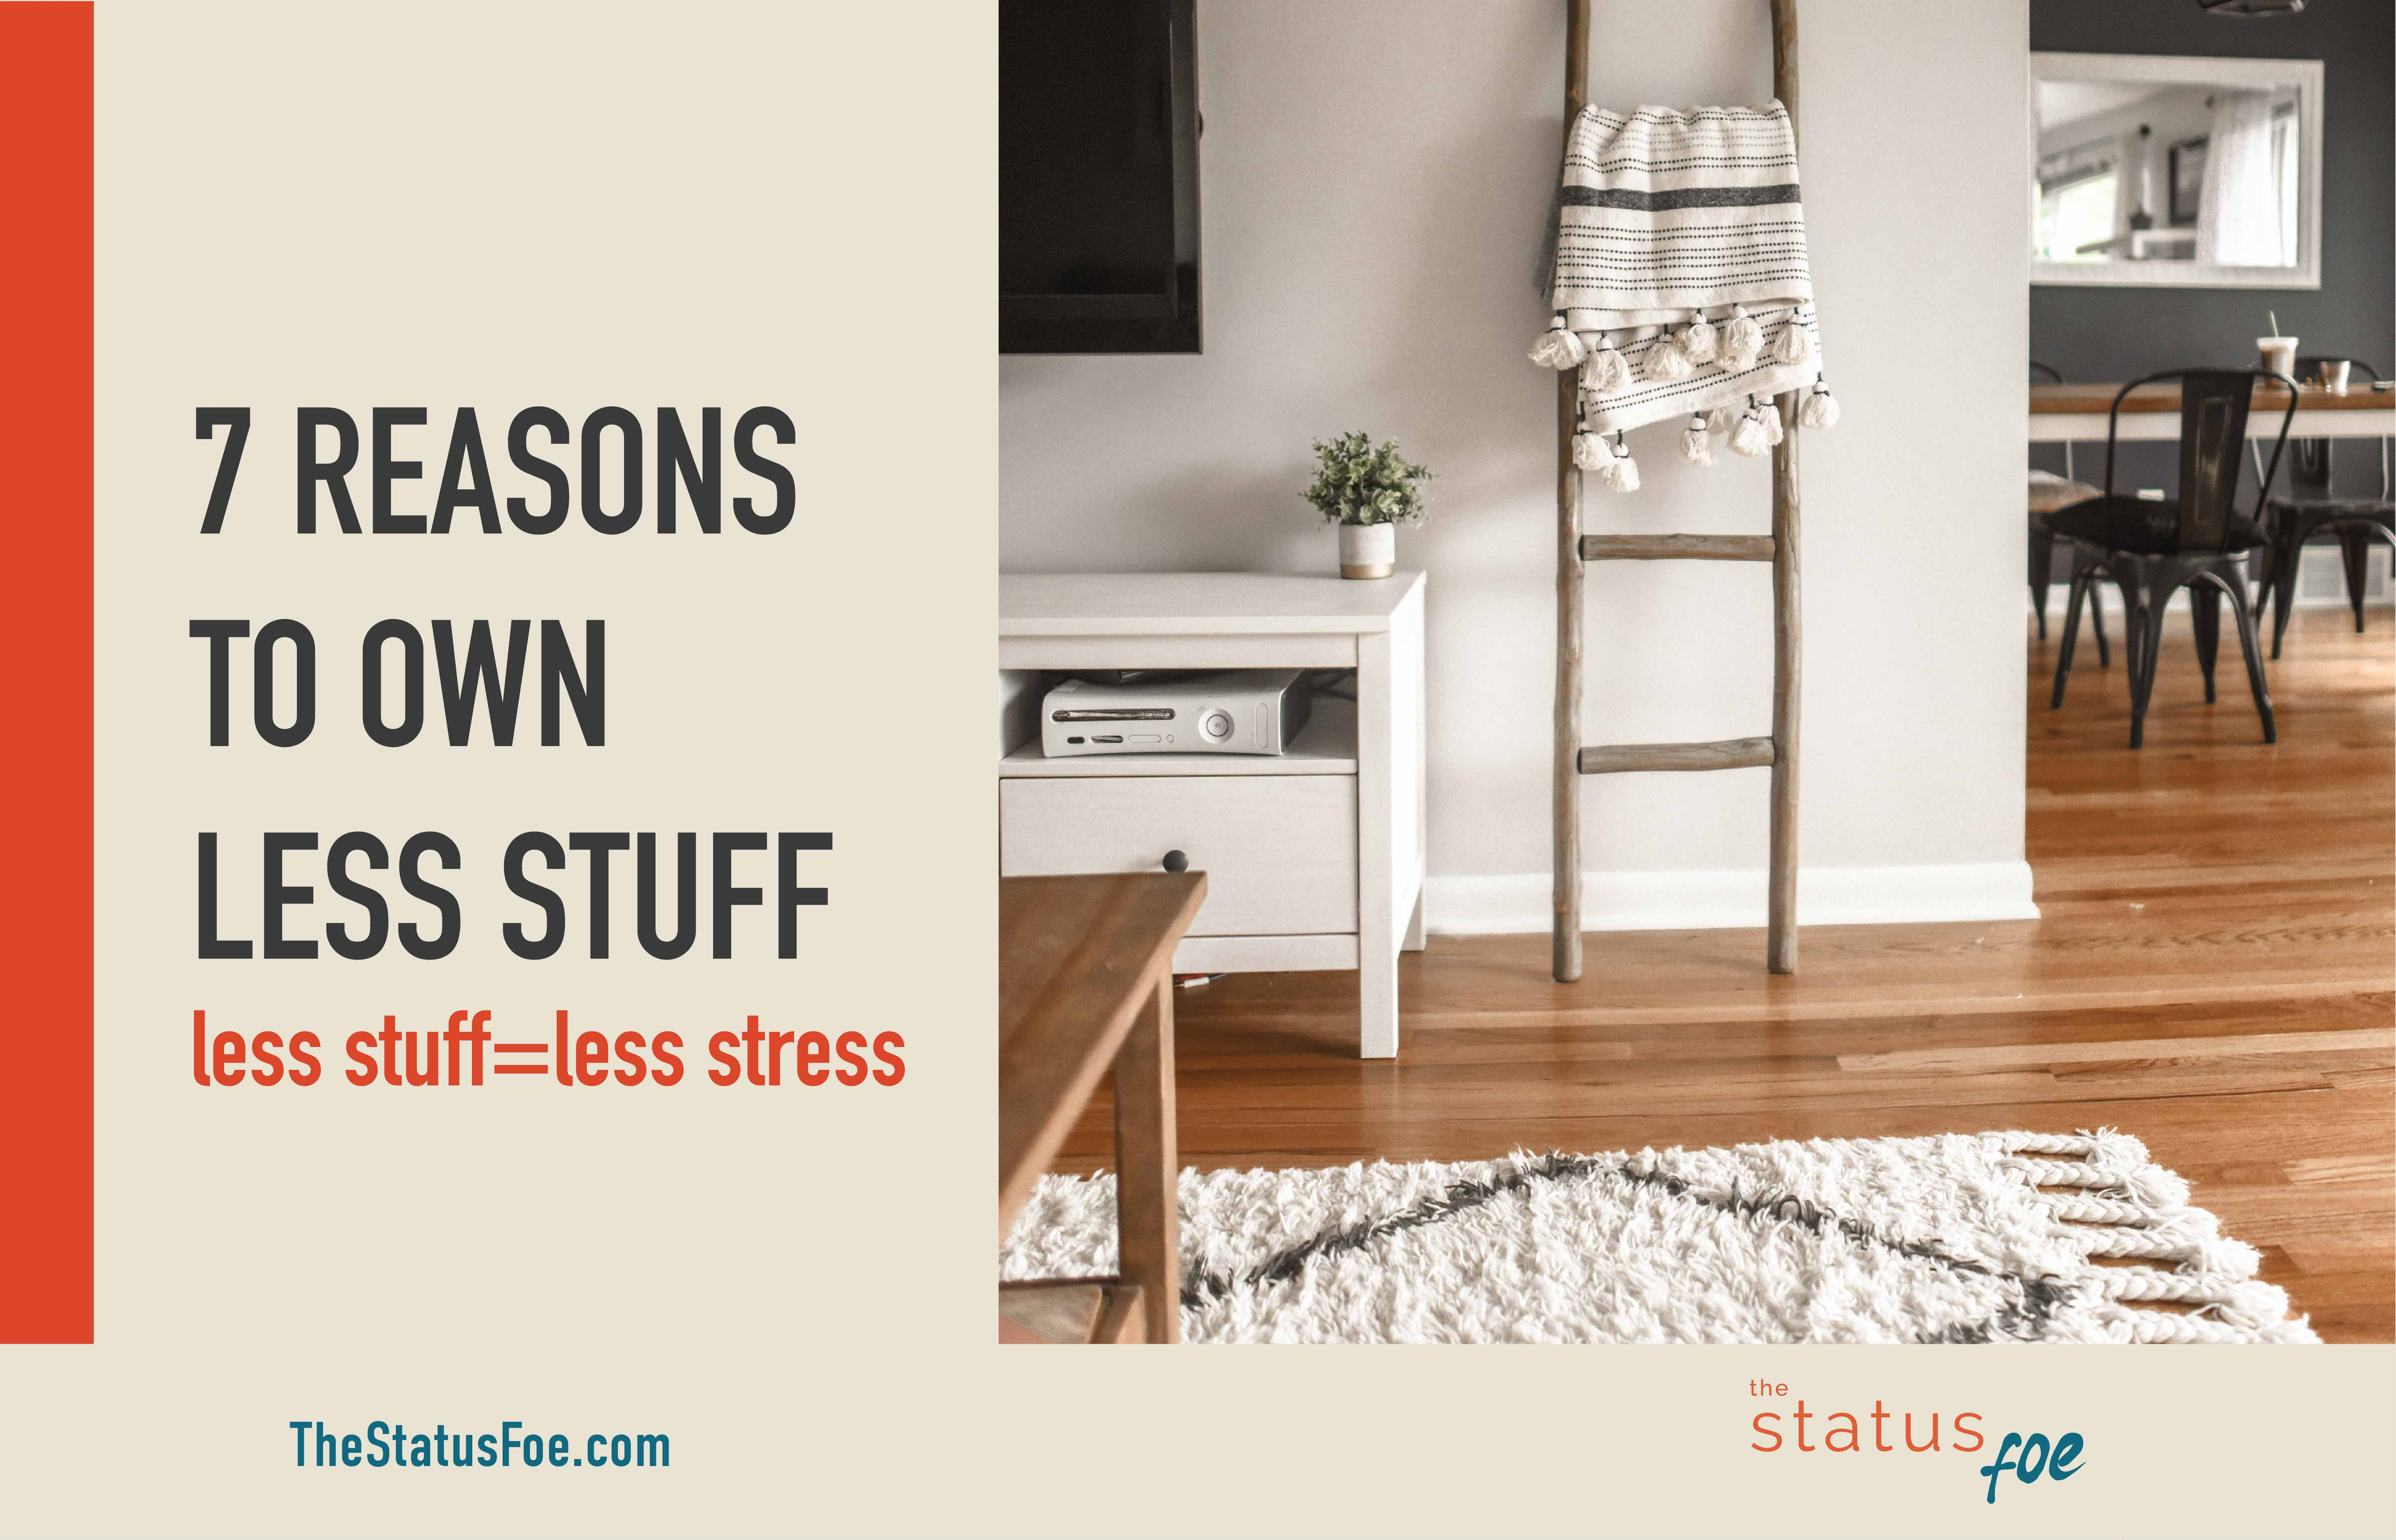 7 Reasons to Own Less Stuff – Frugal & Minimal Living